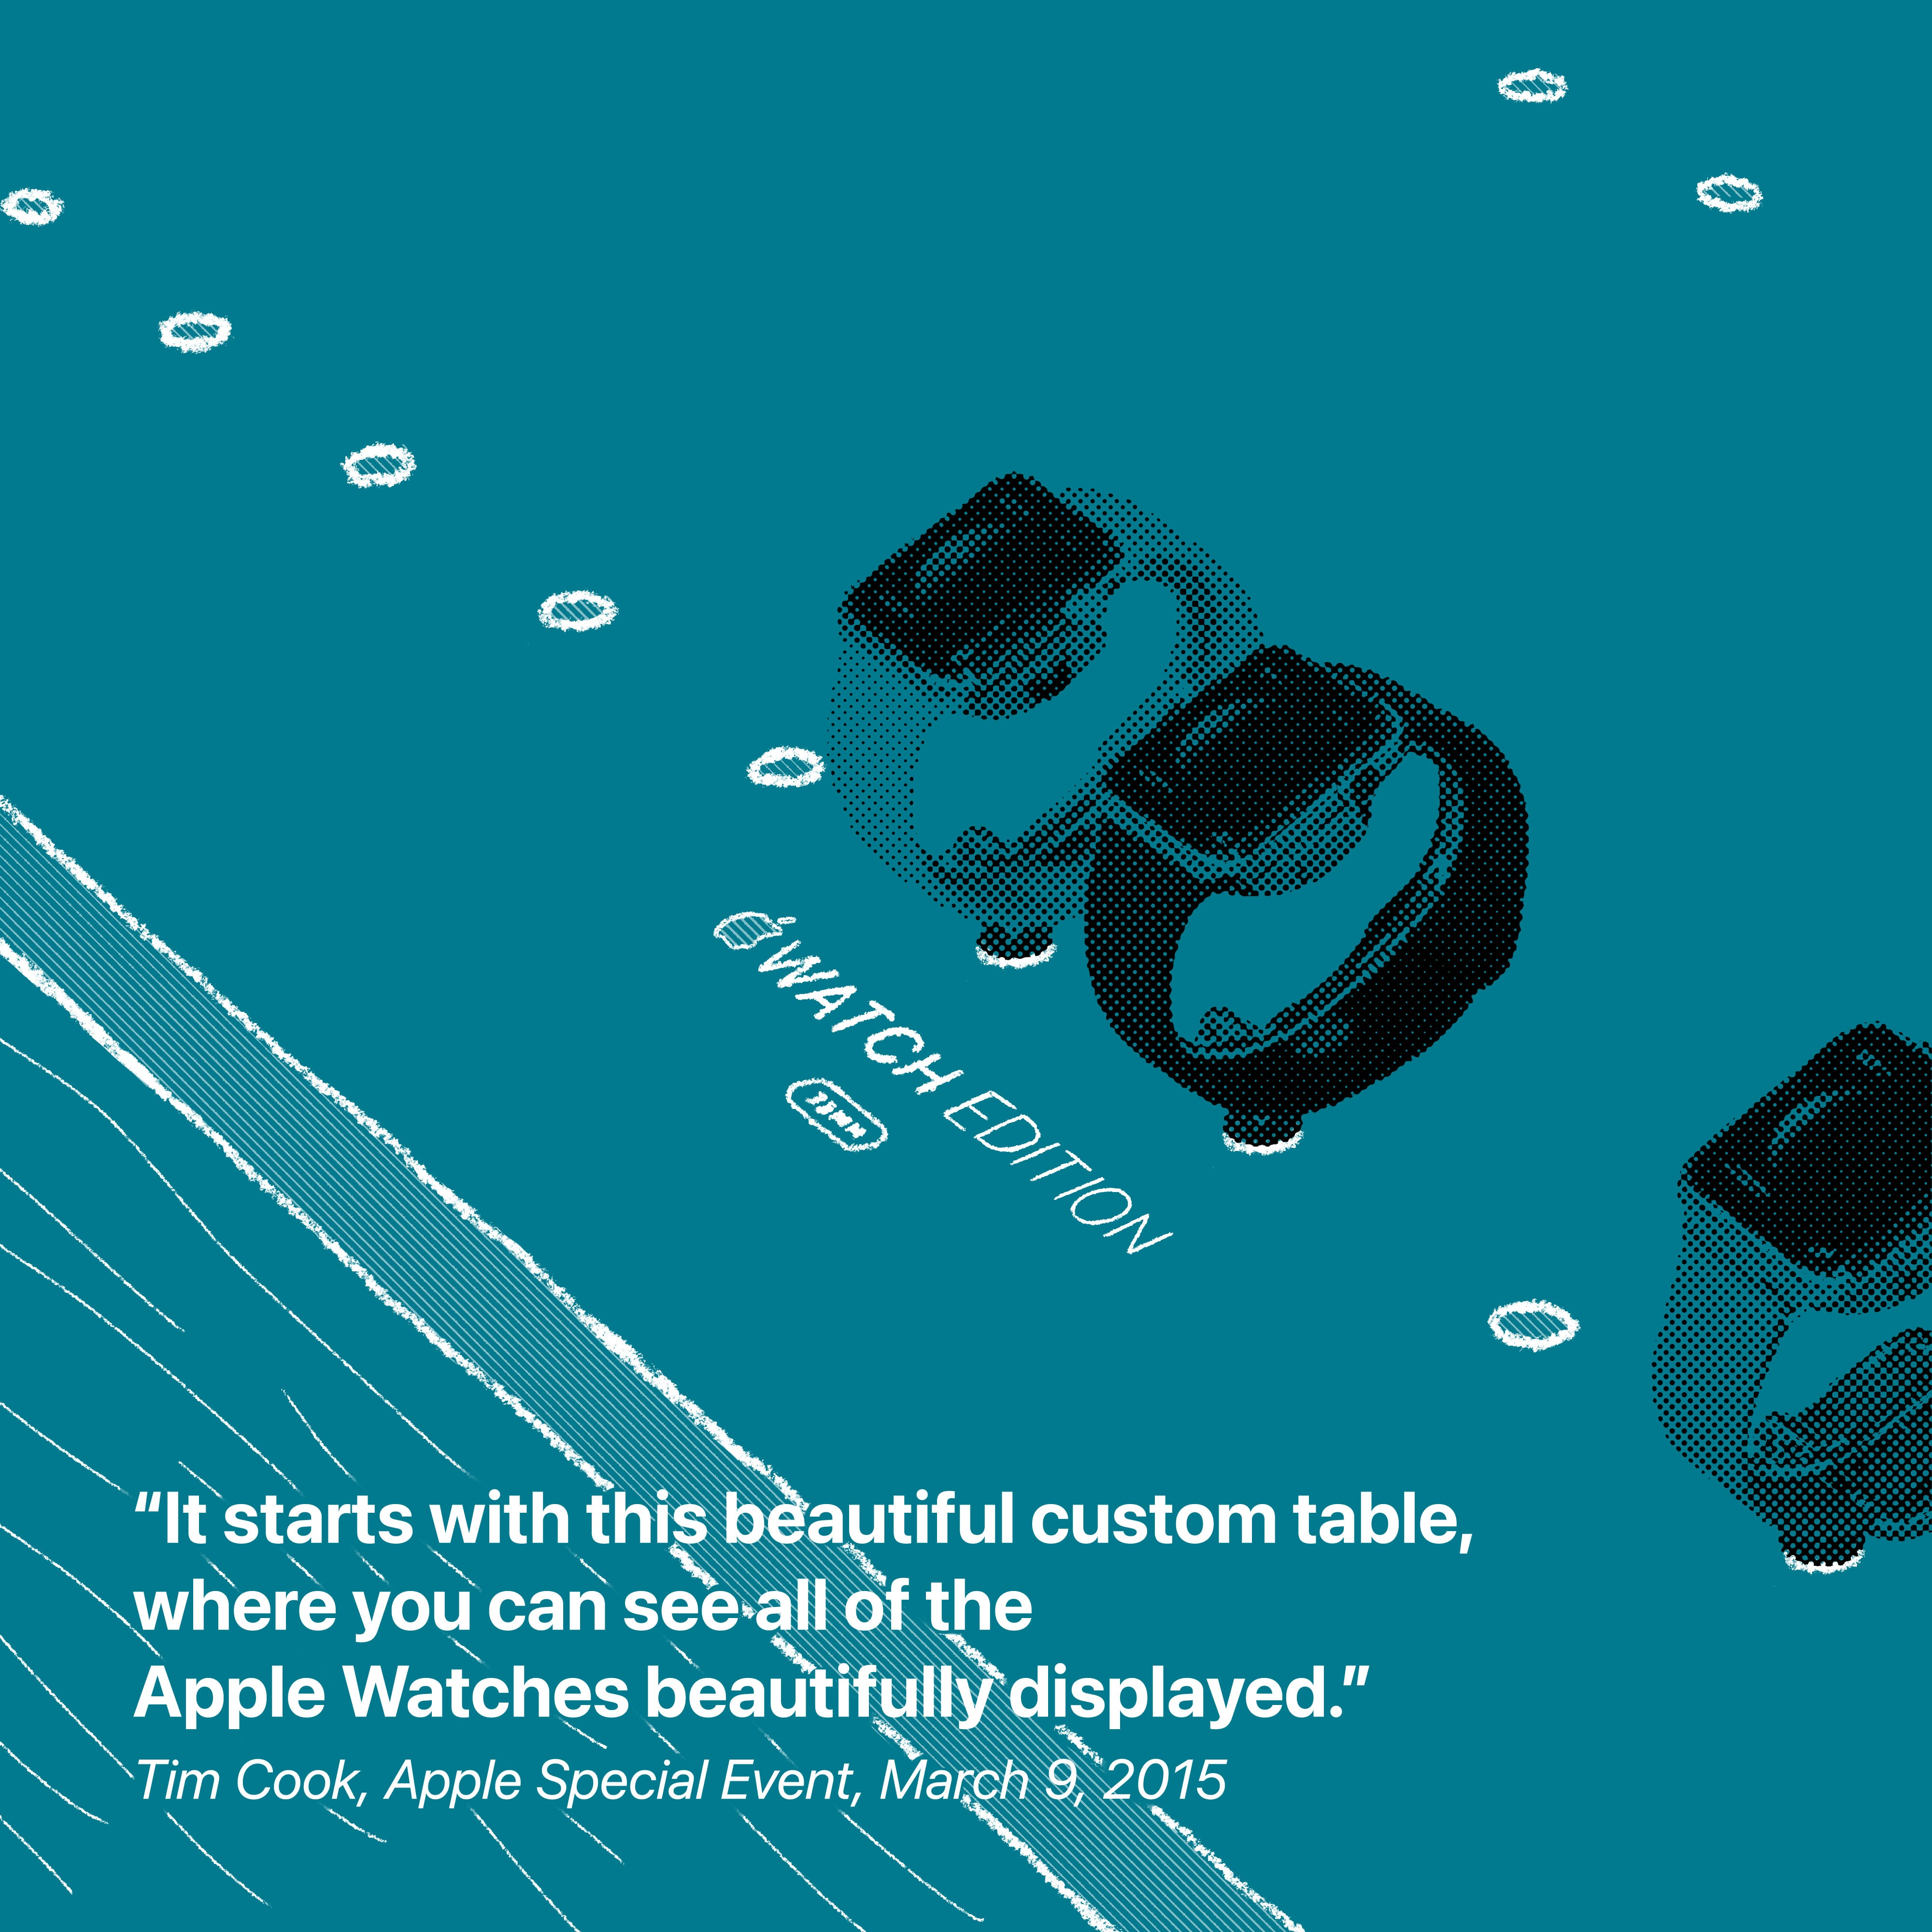 """""""It starts with this beautiful custom table, where you can see all of the Apple Watches beautifully displayed."""" Tim Cook, Apple Special Event, March 9, 2015"""